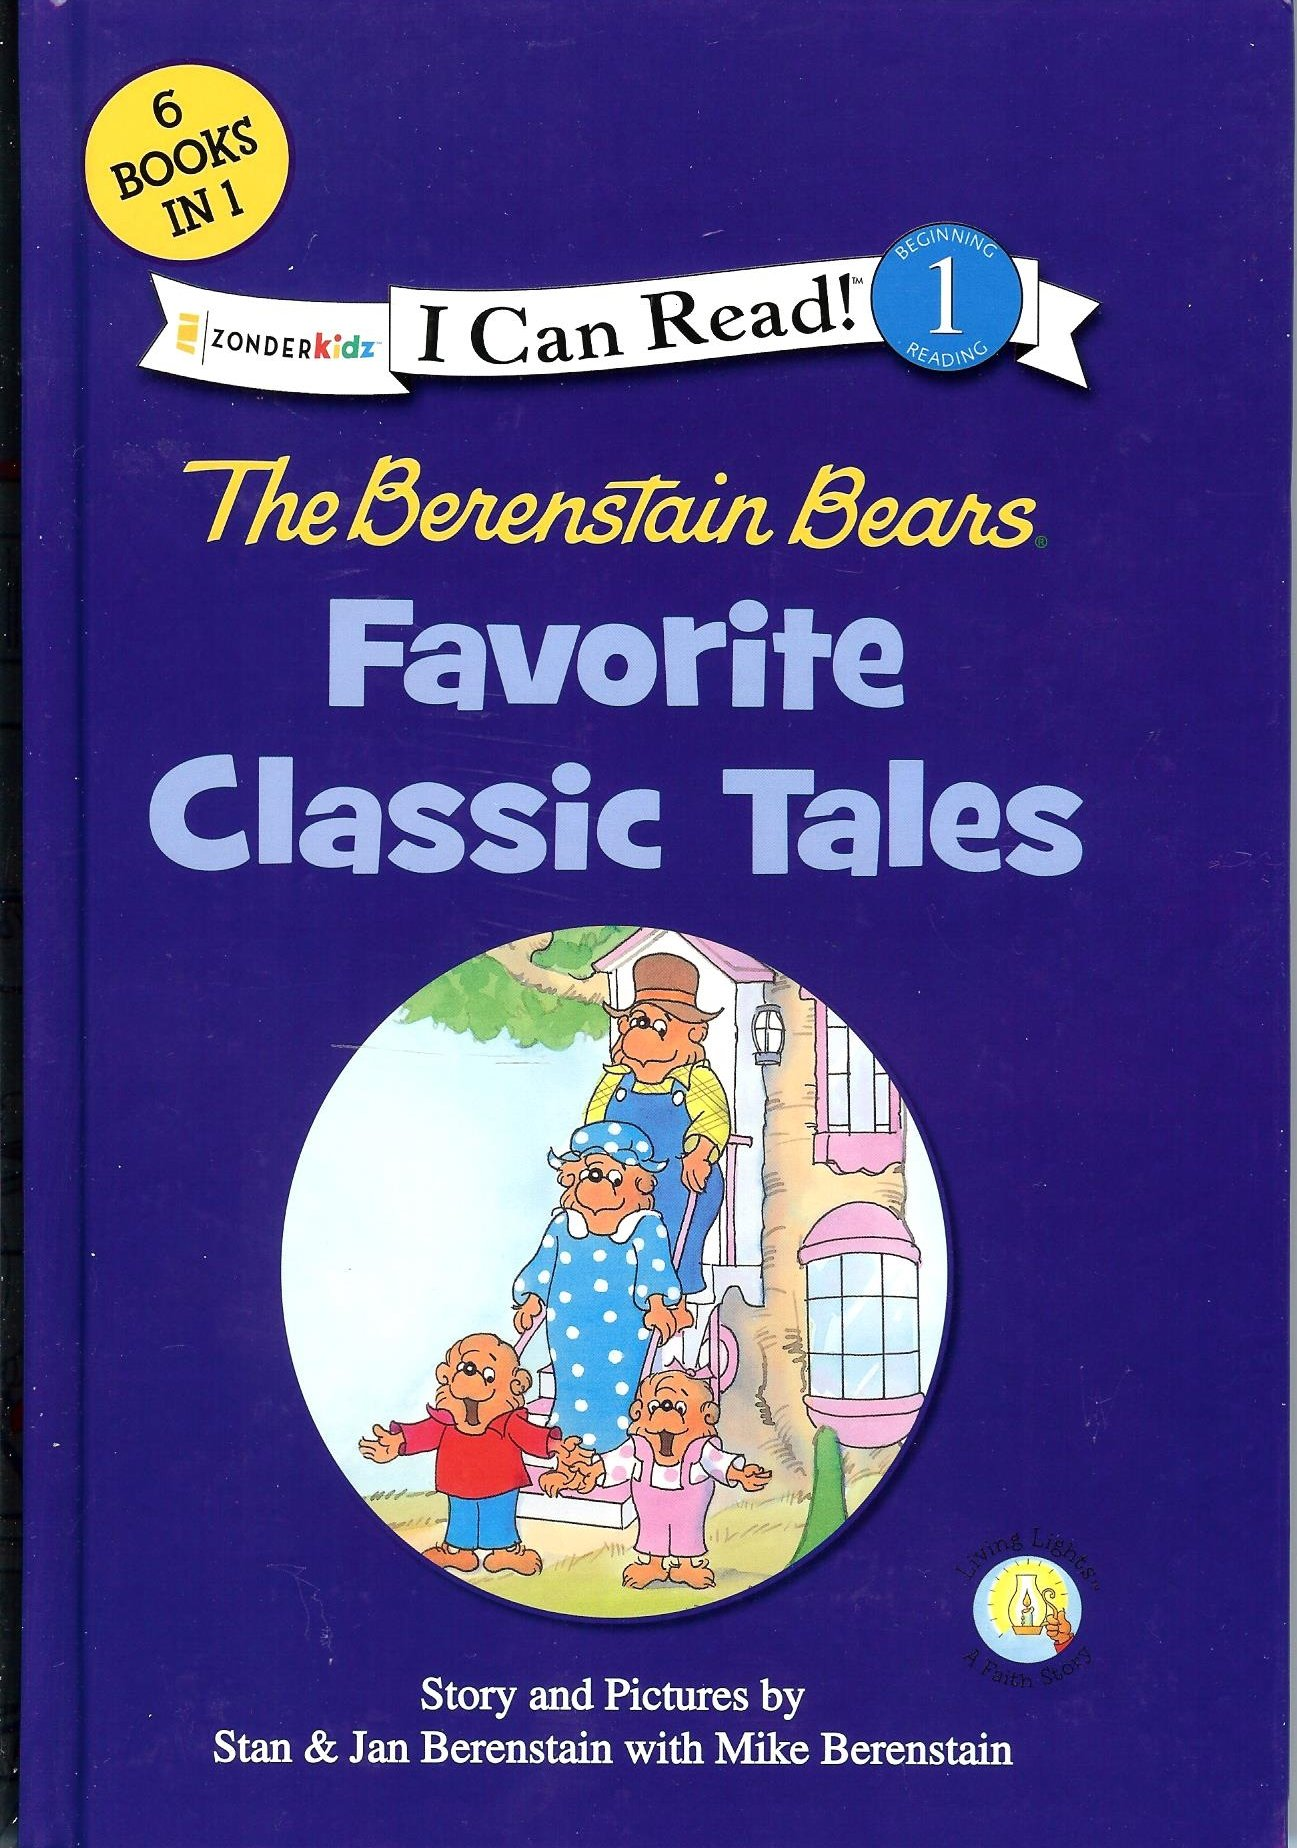 Read Online The Berenstain Bears Favorite Classic Tales - I Can Read - 6 Books in 1 - ZonderKidz pdf epub